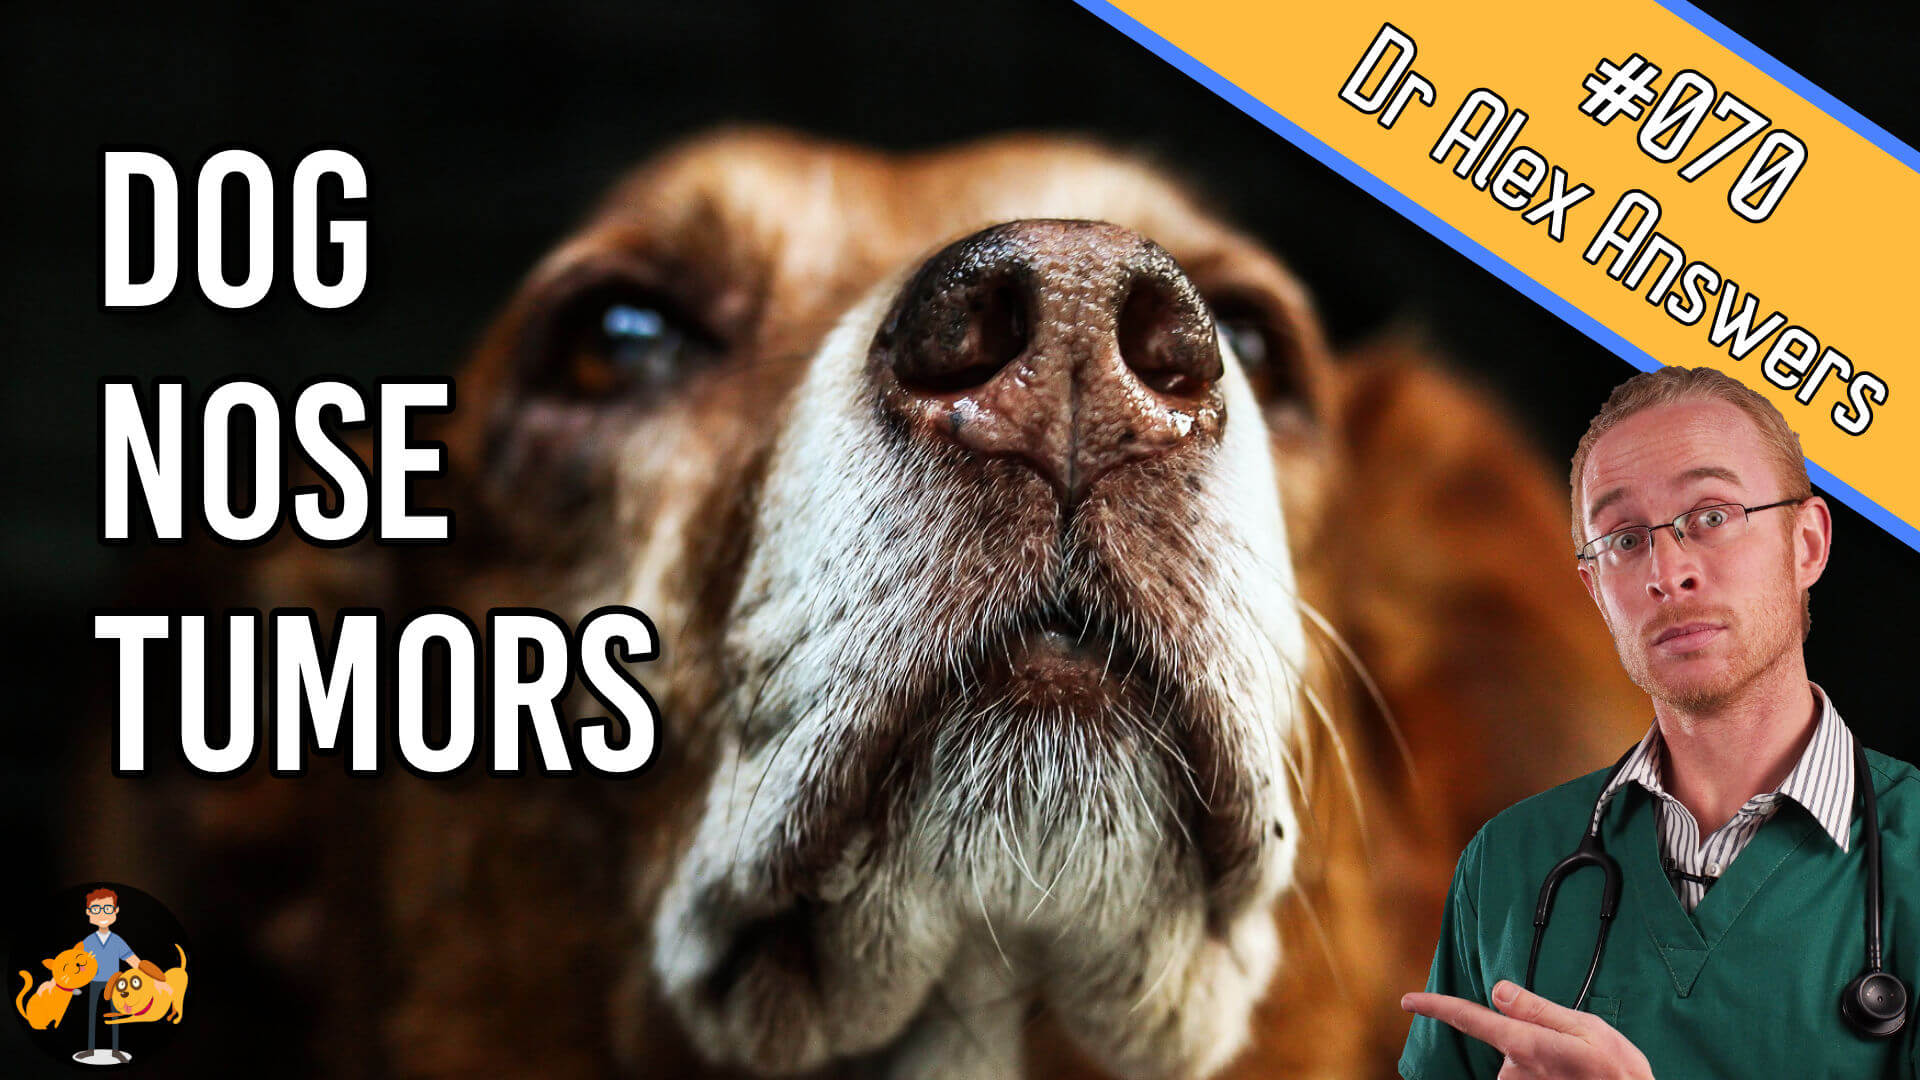 Dog nose tumors - question 70 of the Dr Alex answers show